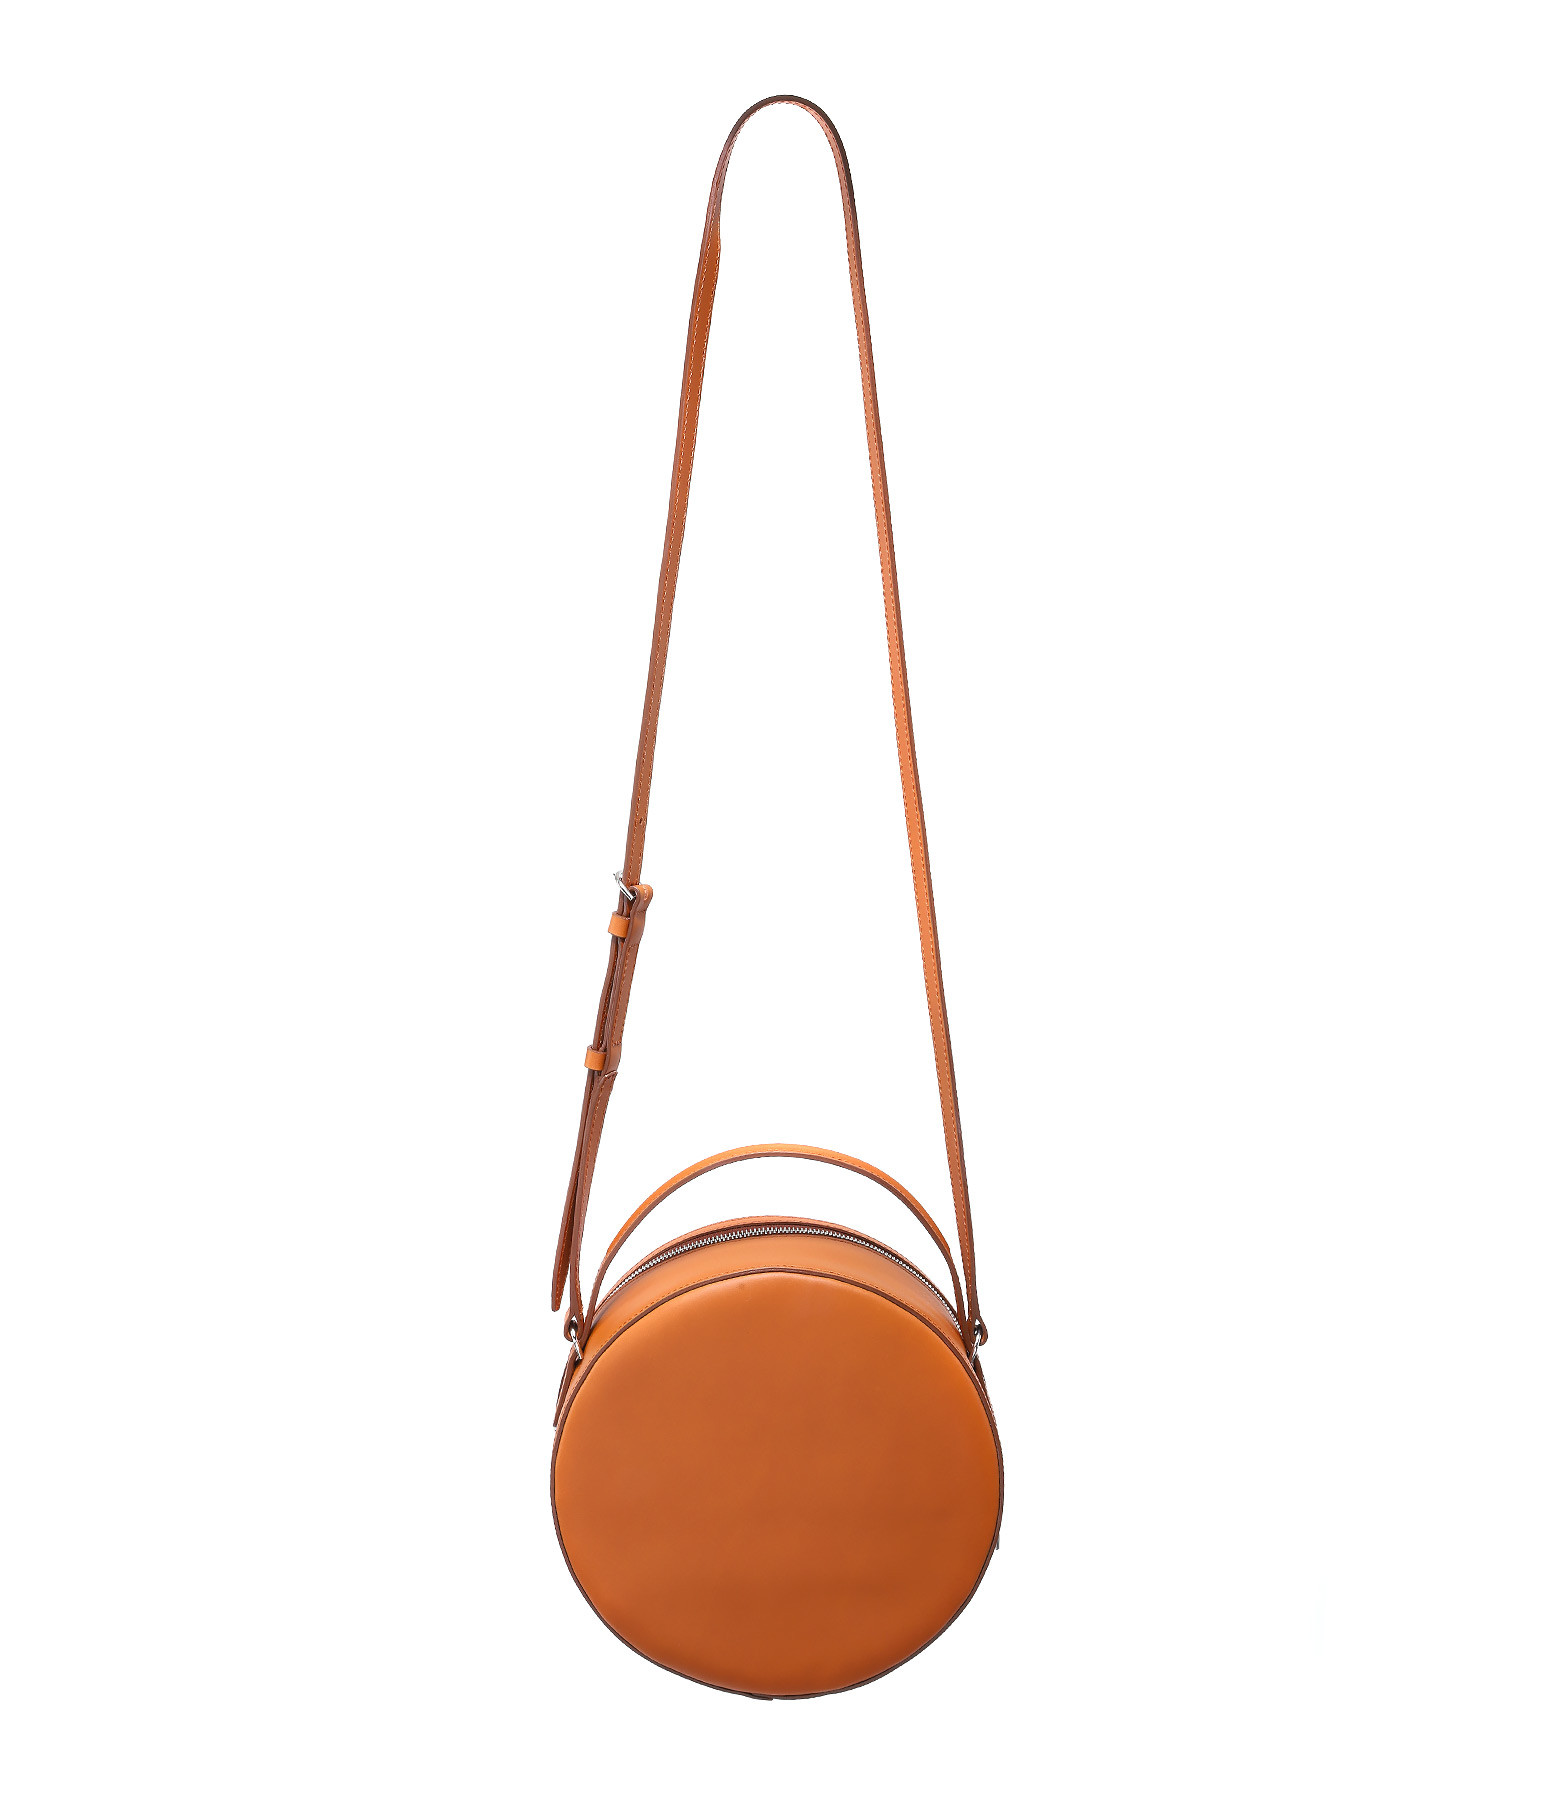 PB 0110 - Sac Cuir Marron